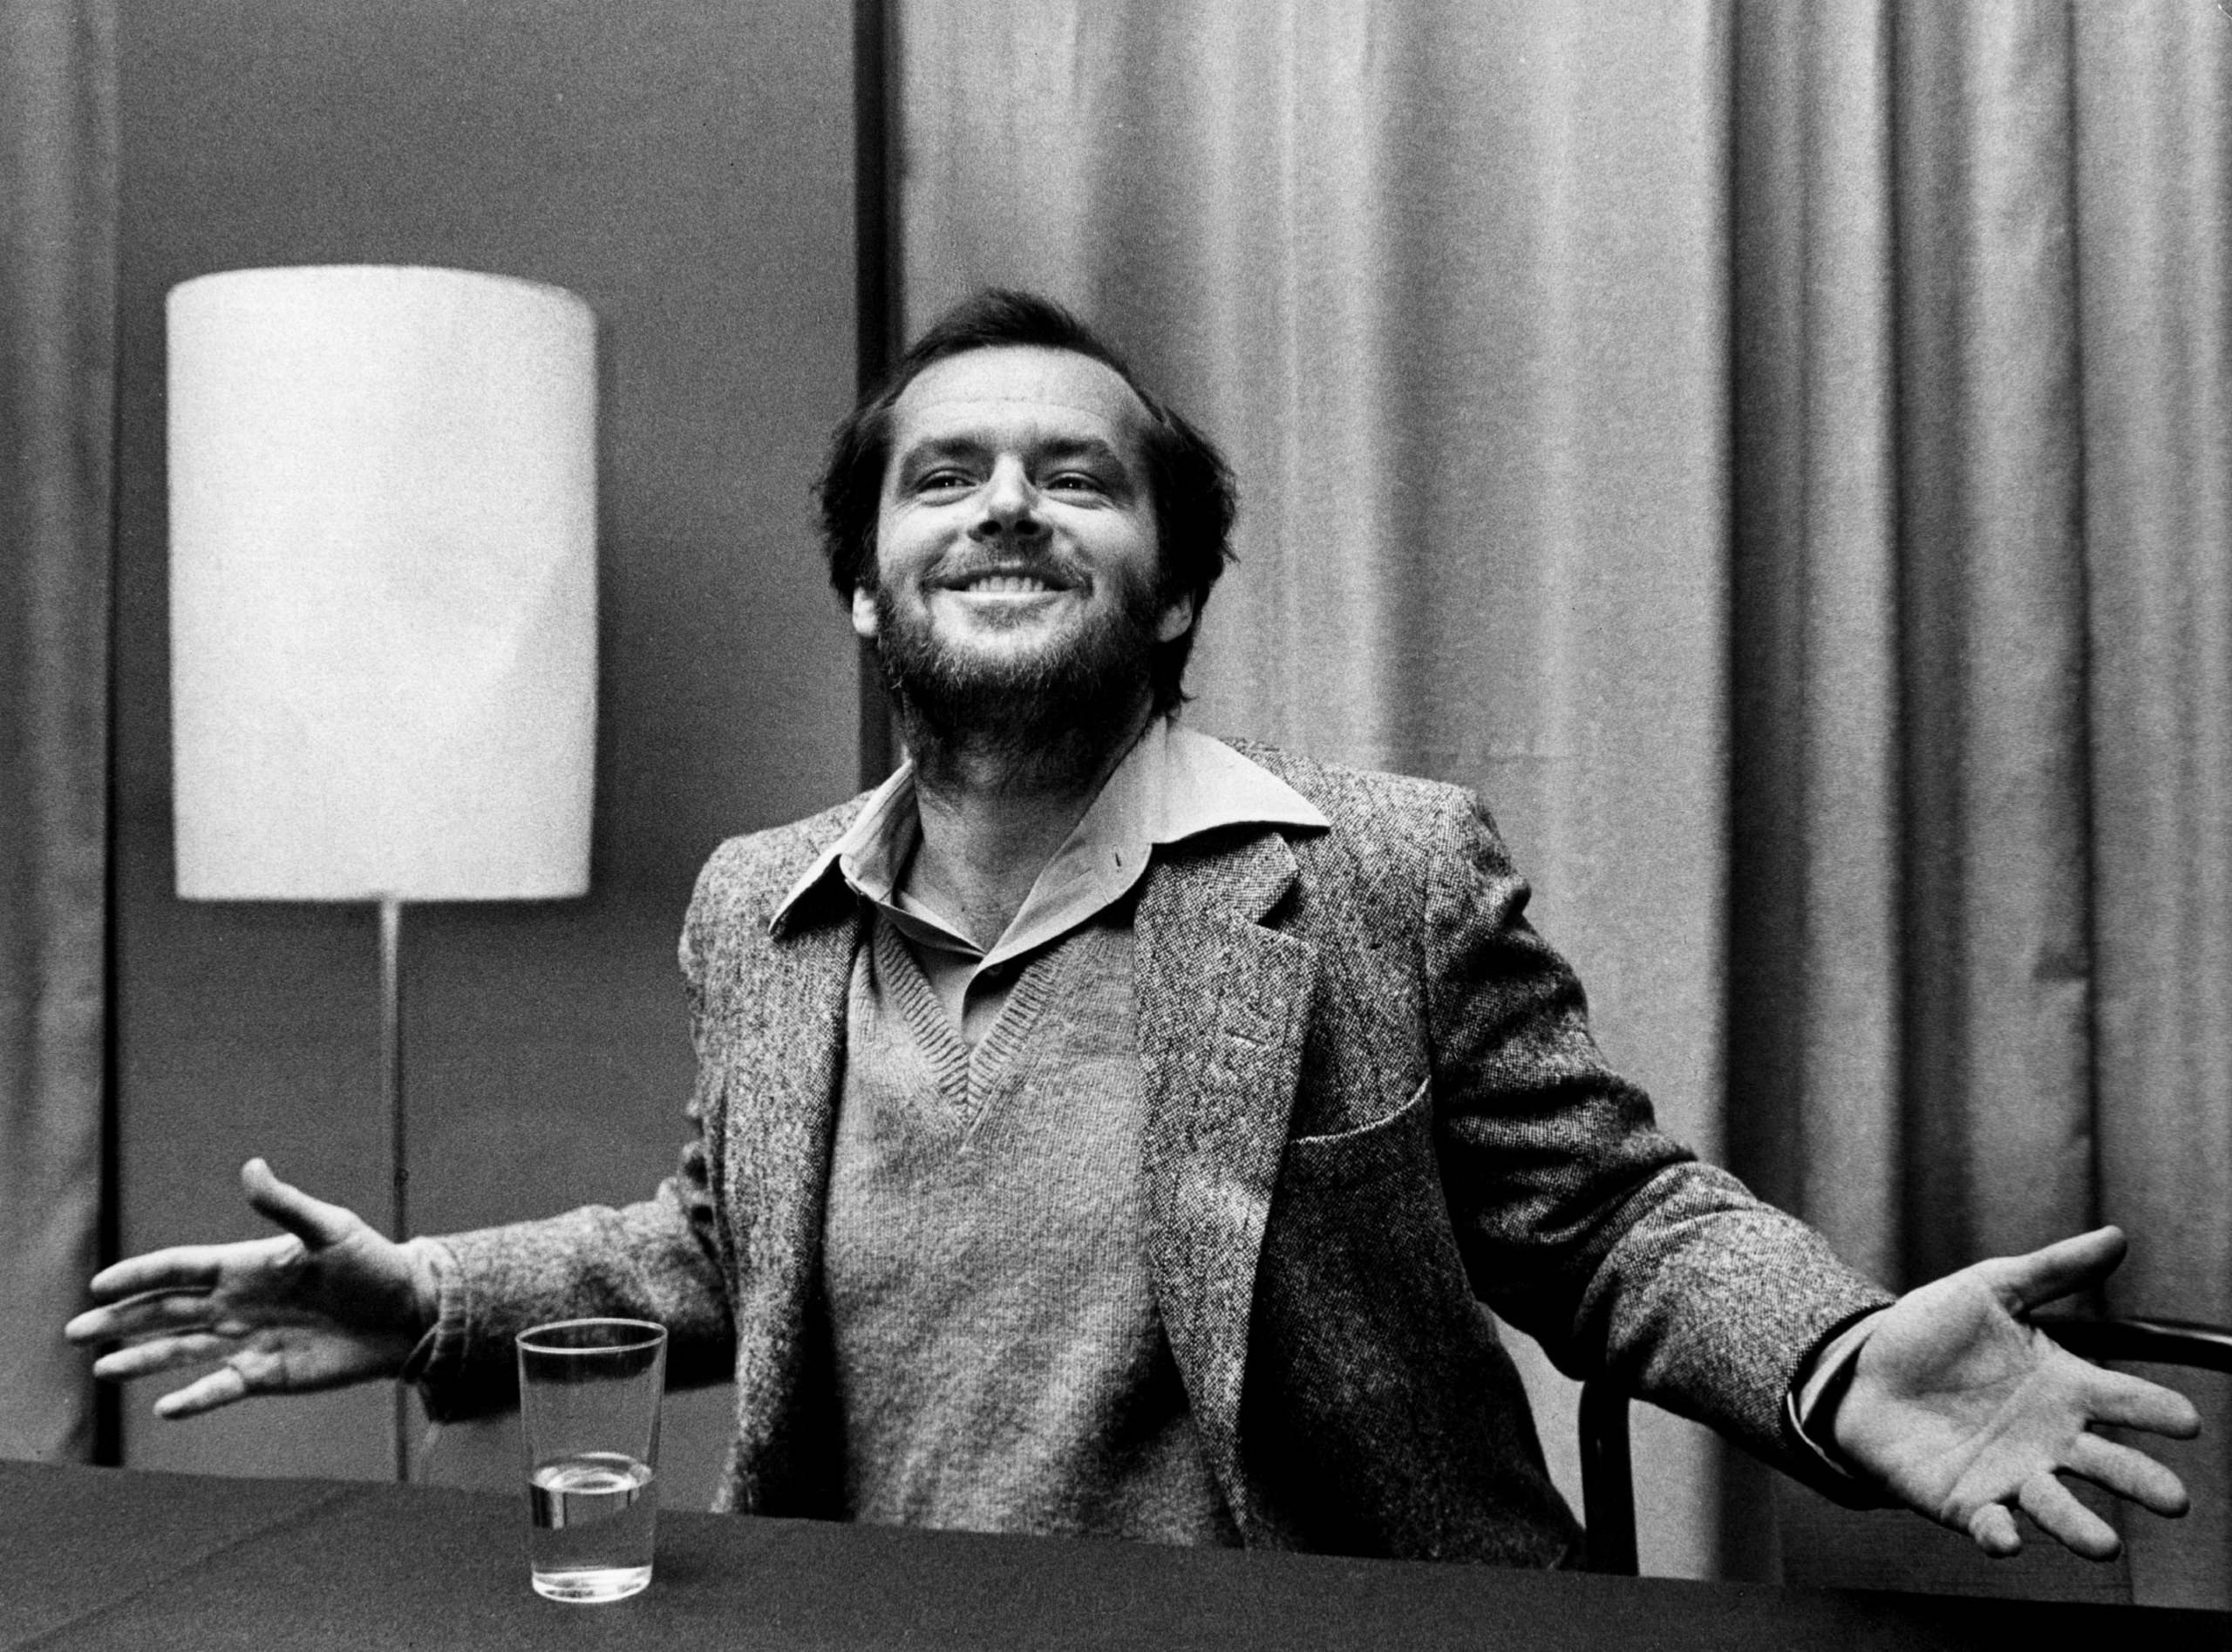 jack nicholson 4k widescreen desktop wallpaper 1327